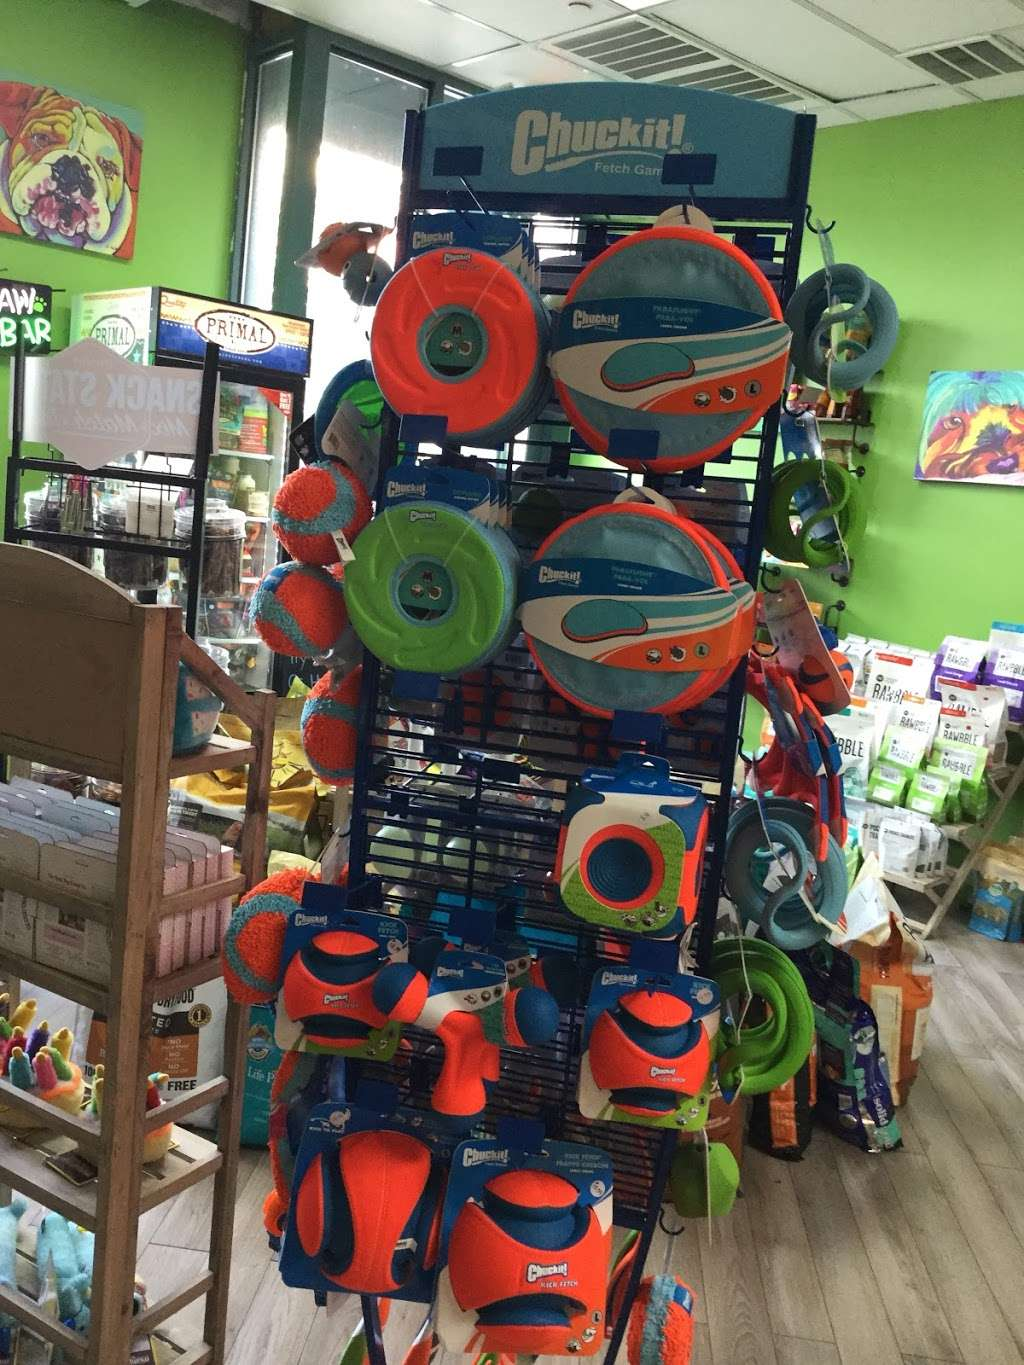 Bark And Purr Yonkers - clothing store    Photo 10 of 10   Address: 1 Pierpointe St, Yonkers, NY 10701, USA   Phone: (914) 476-2275